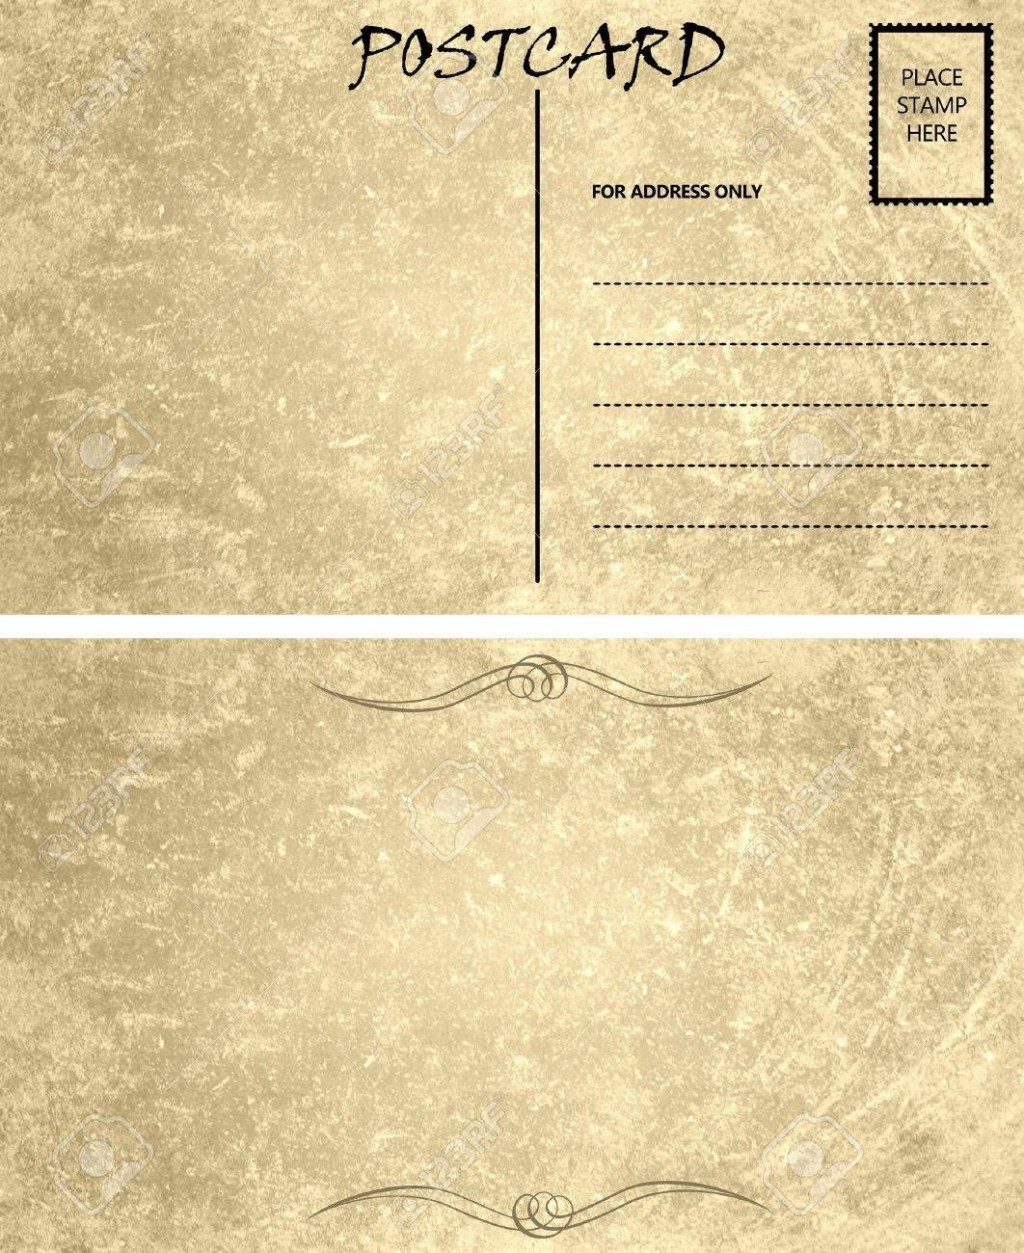 006 Wondrou Postcard Front And Back Template Free Image  To SchoolLarge